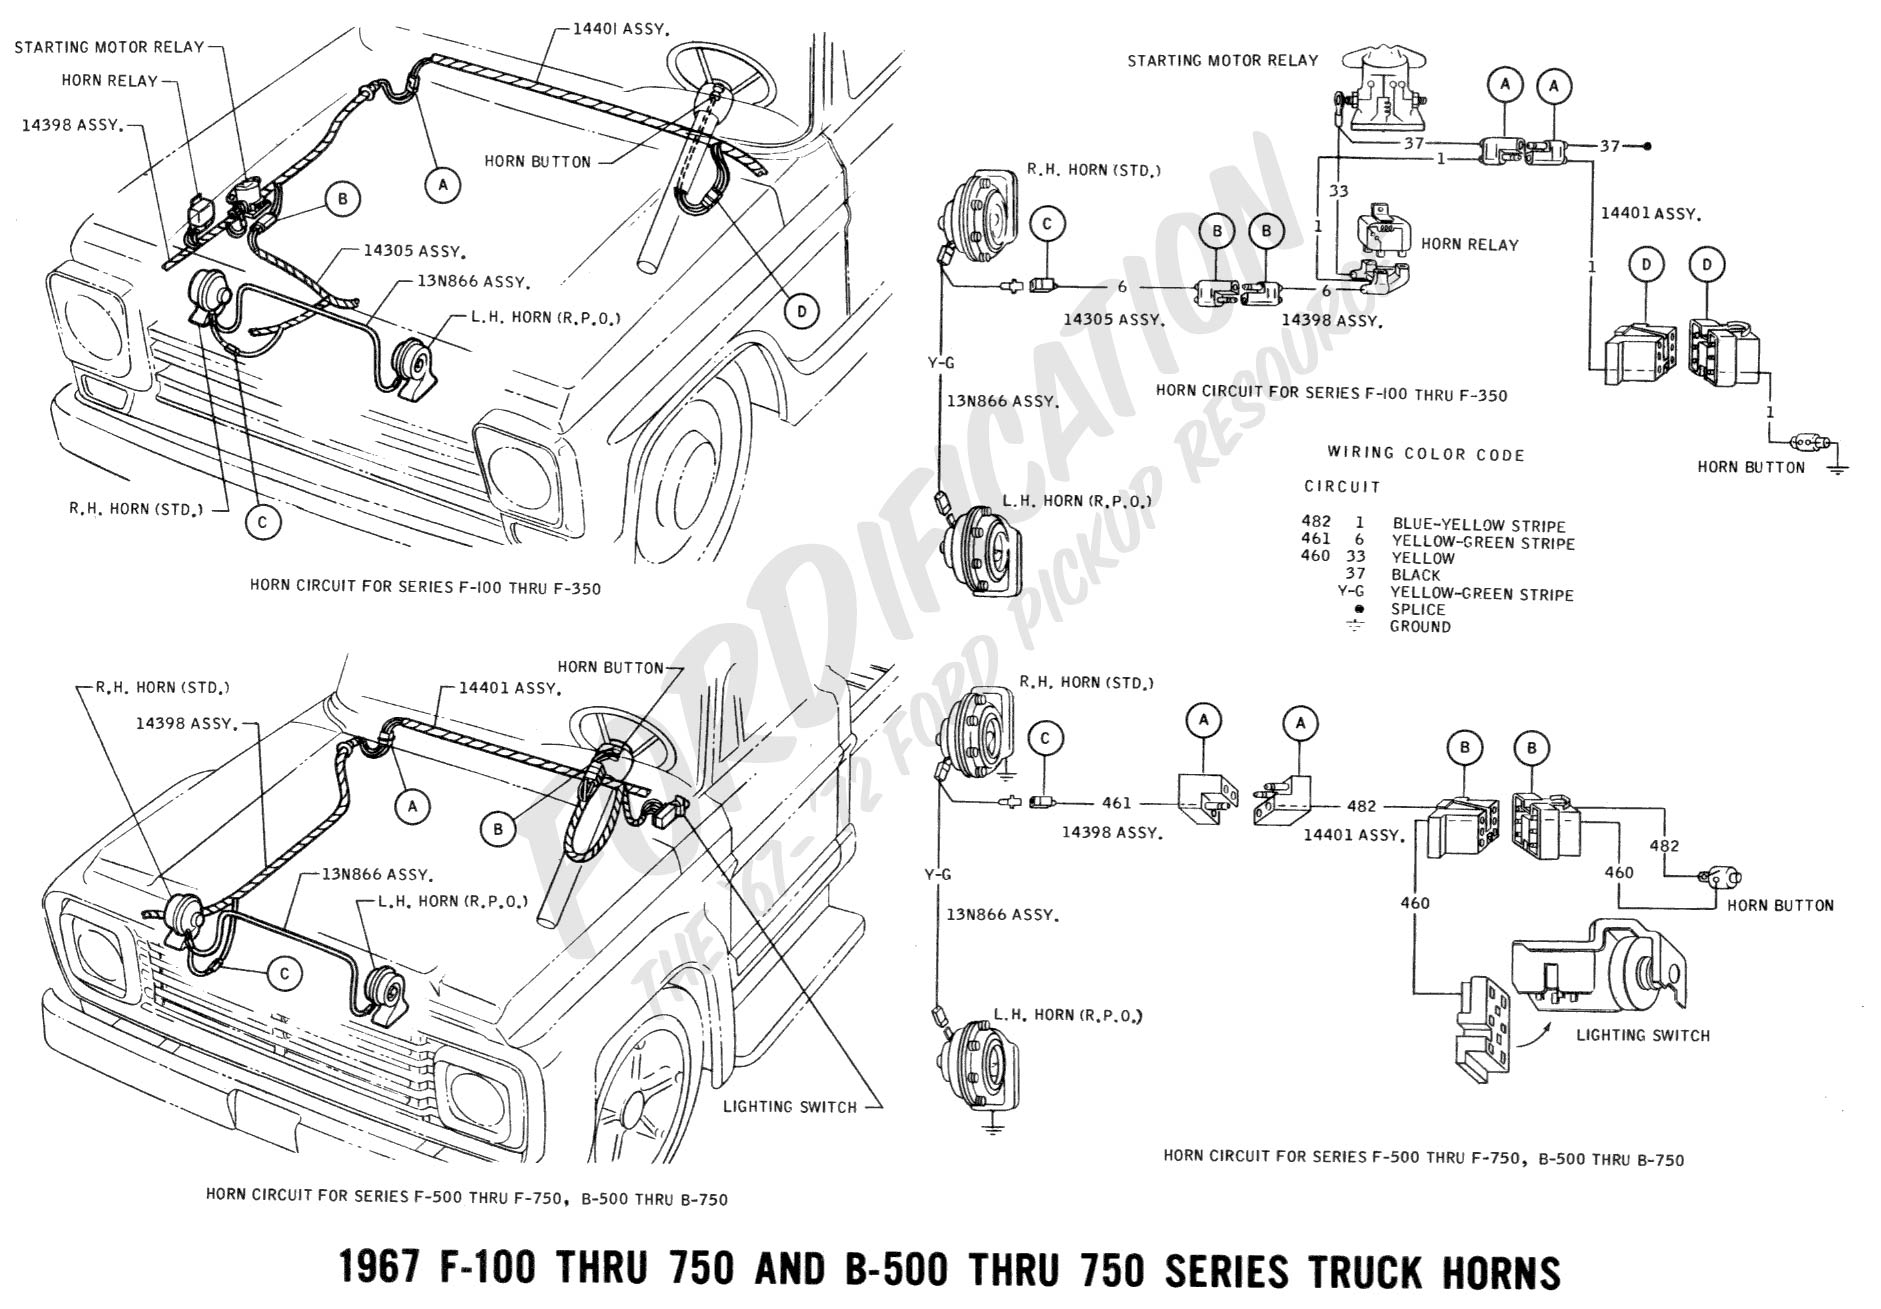 hight resolution of 1956 f100 wiring diagram schema wiring diagrams 56 ford truck wiring diagram 1956 f100 wiring diagram